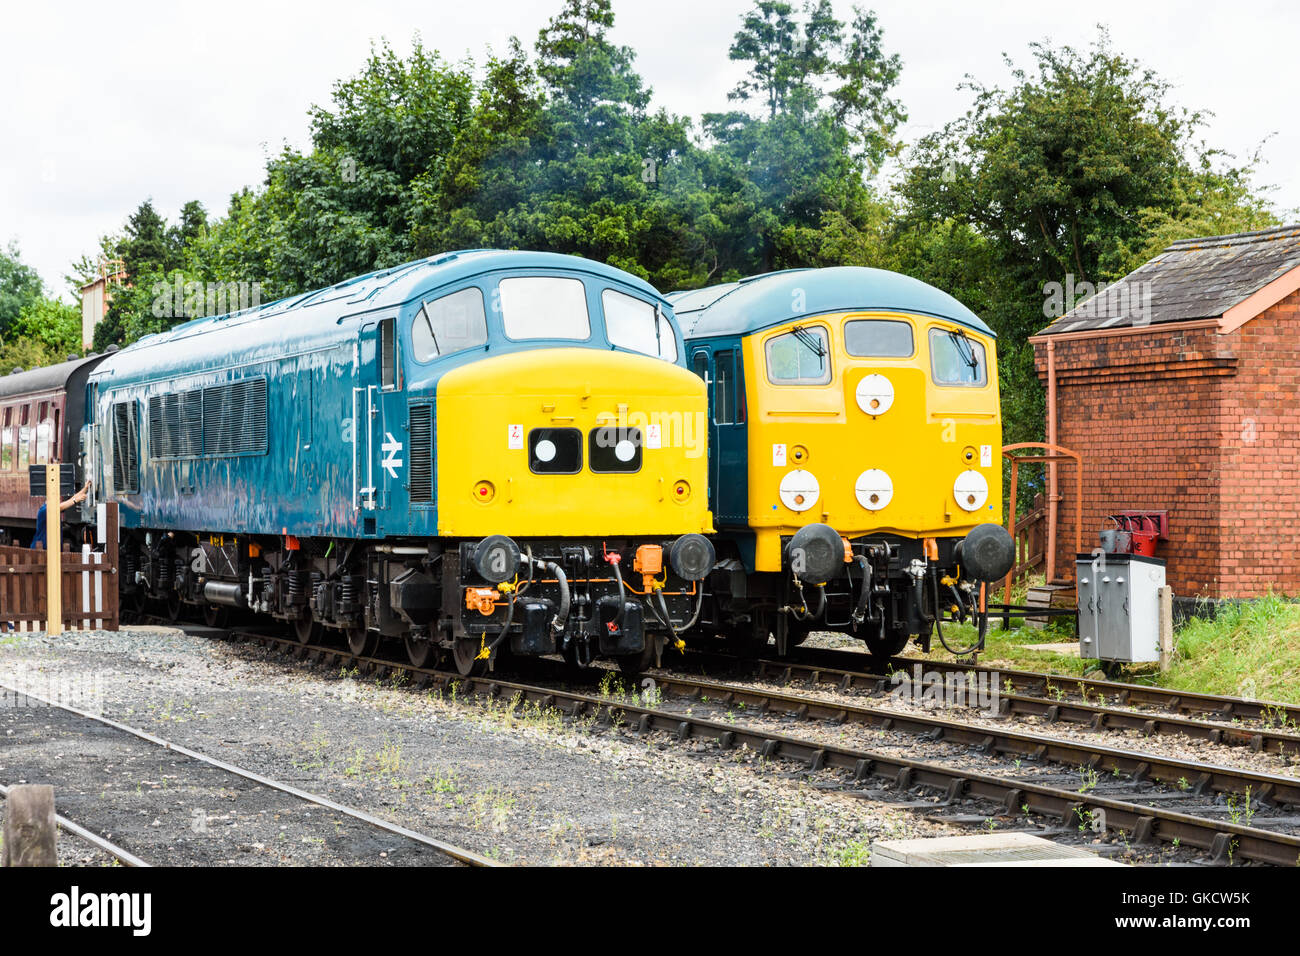 Class 45 45149 and Class 24 D5081 side by side at Toddington station on the GWSR Stock Photo